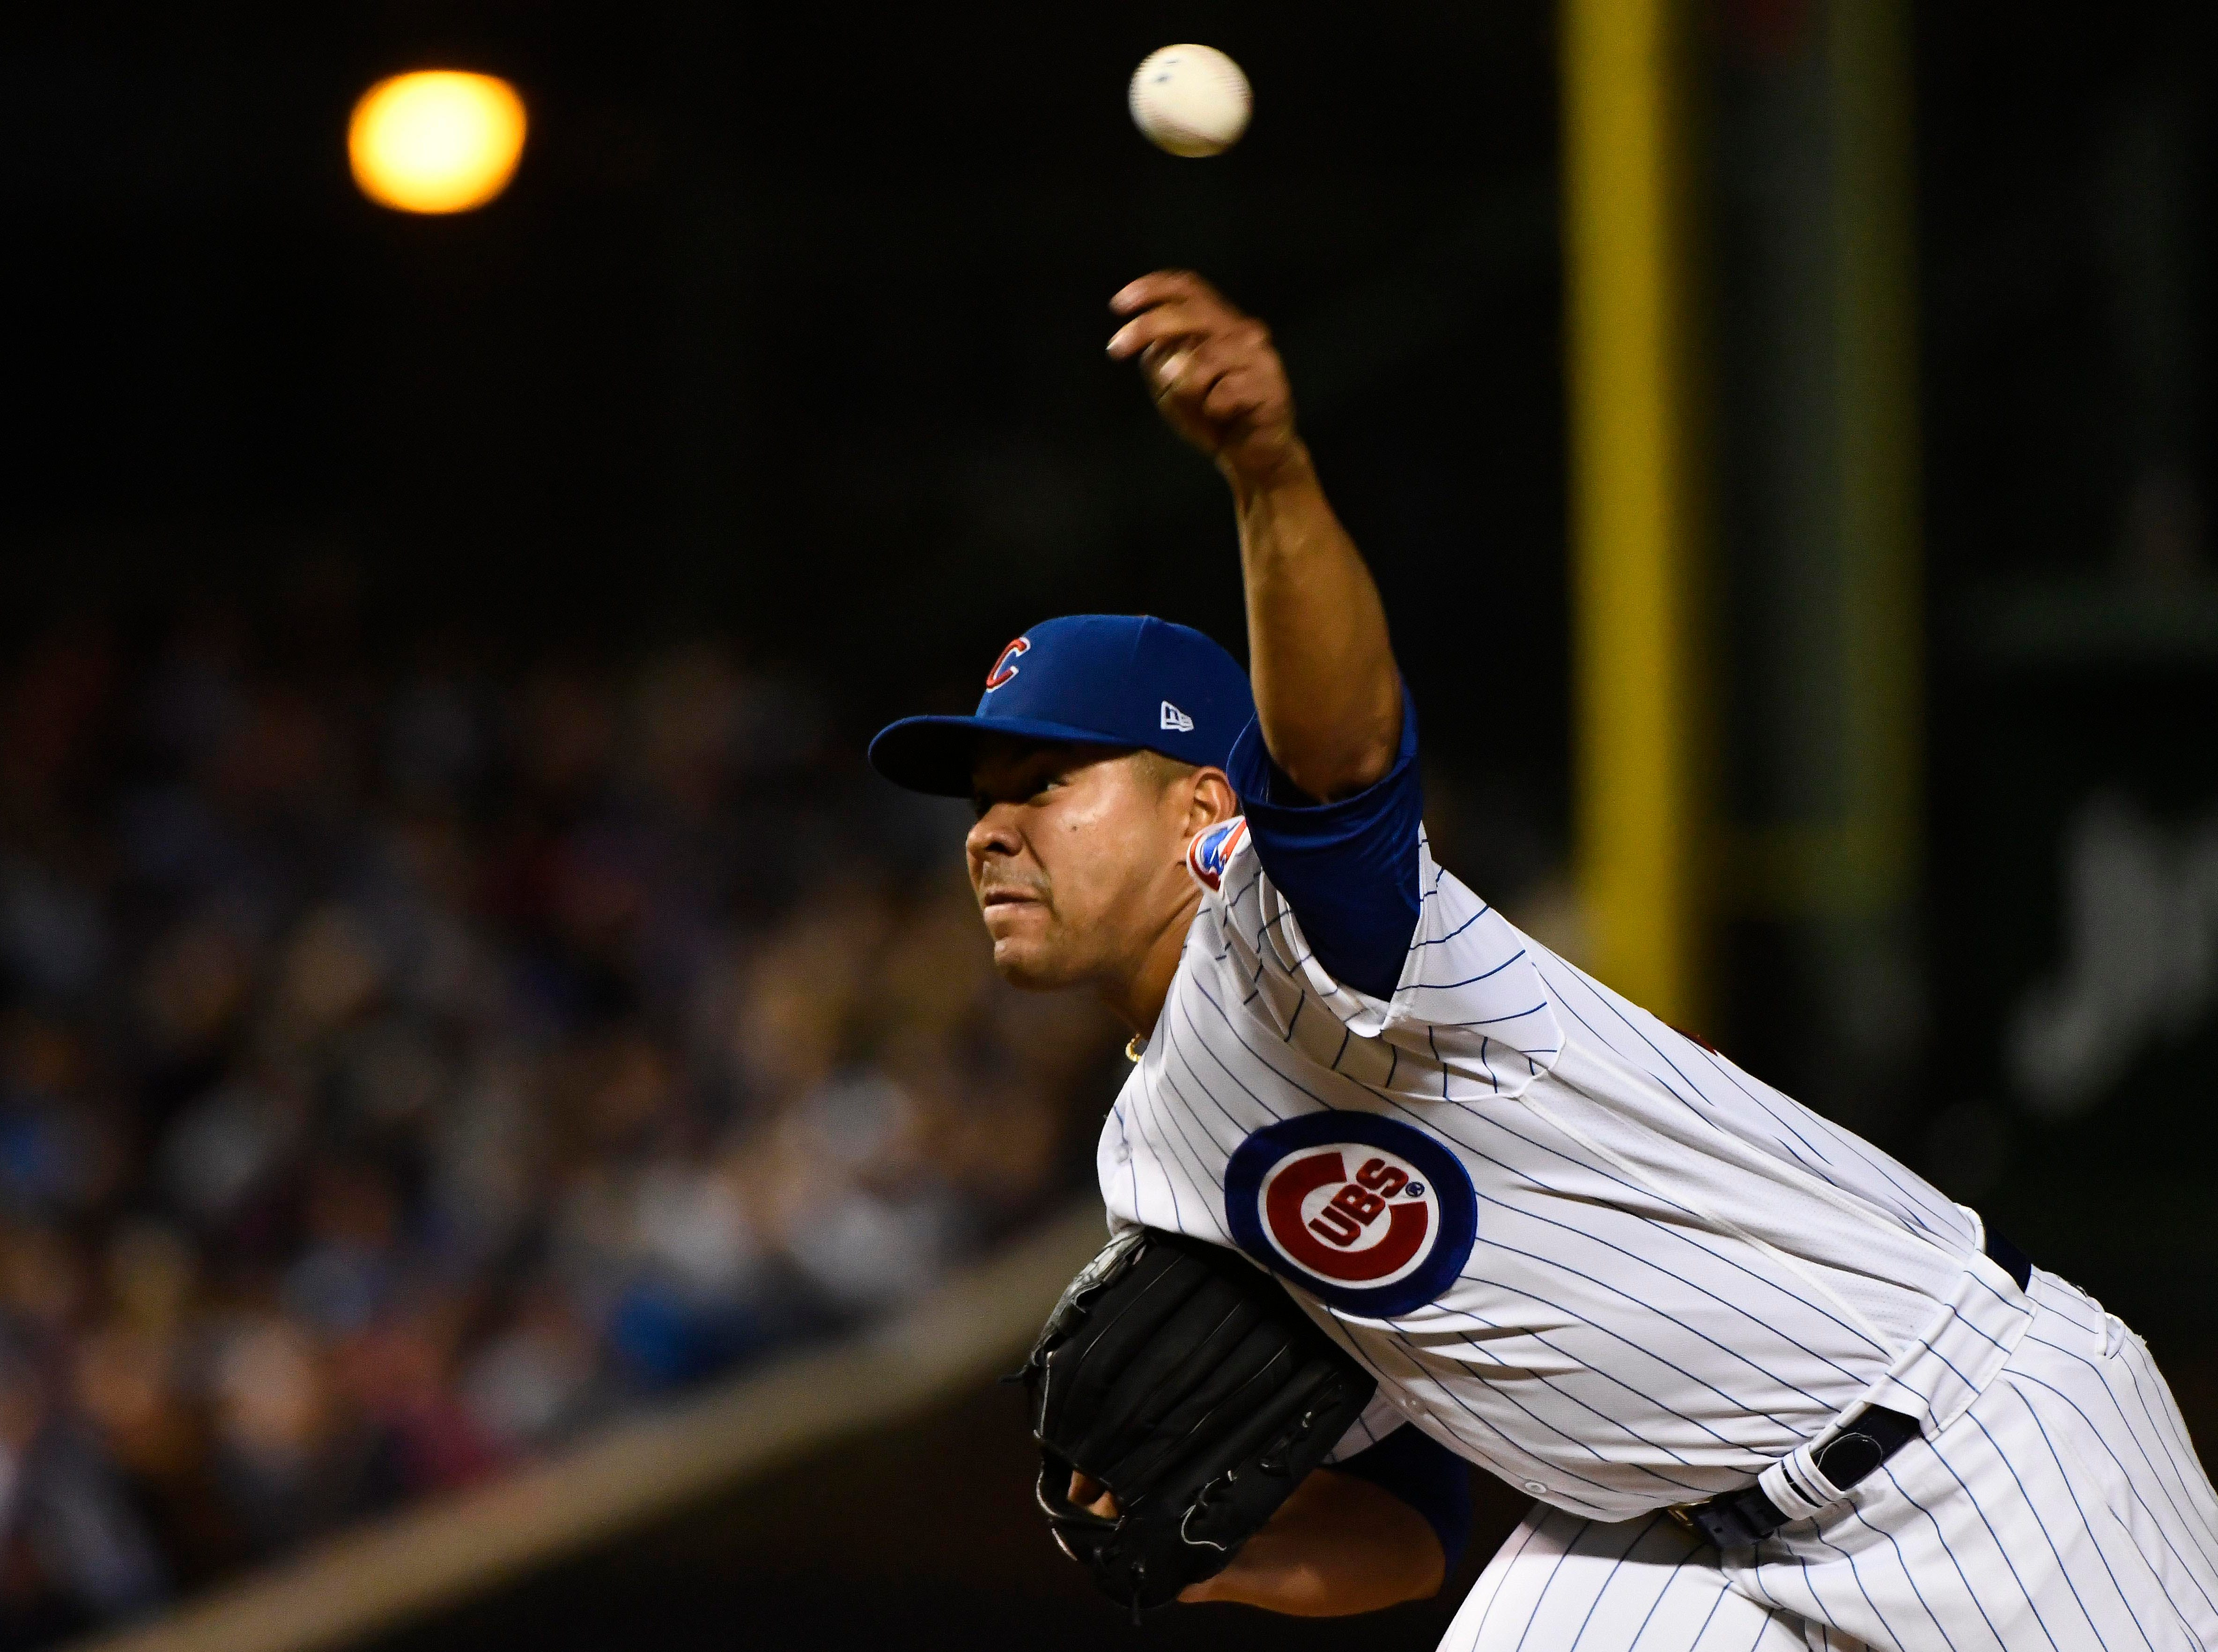 Sep 11, 2018; Chicago, IL, USA; Chicago Cubs starting pitcher Jose Quintana (62) delivers against the Milwaukee Brewers in the sixth inning at Wrigley Field. Mandatory Credit: Matt Marton-USA TODAY Sports